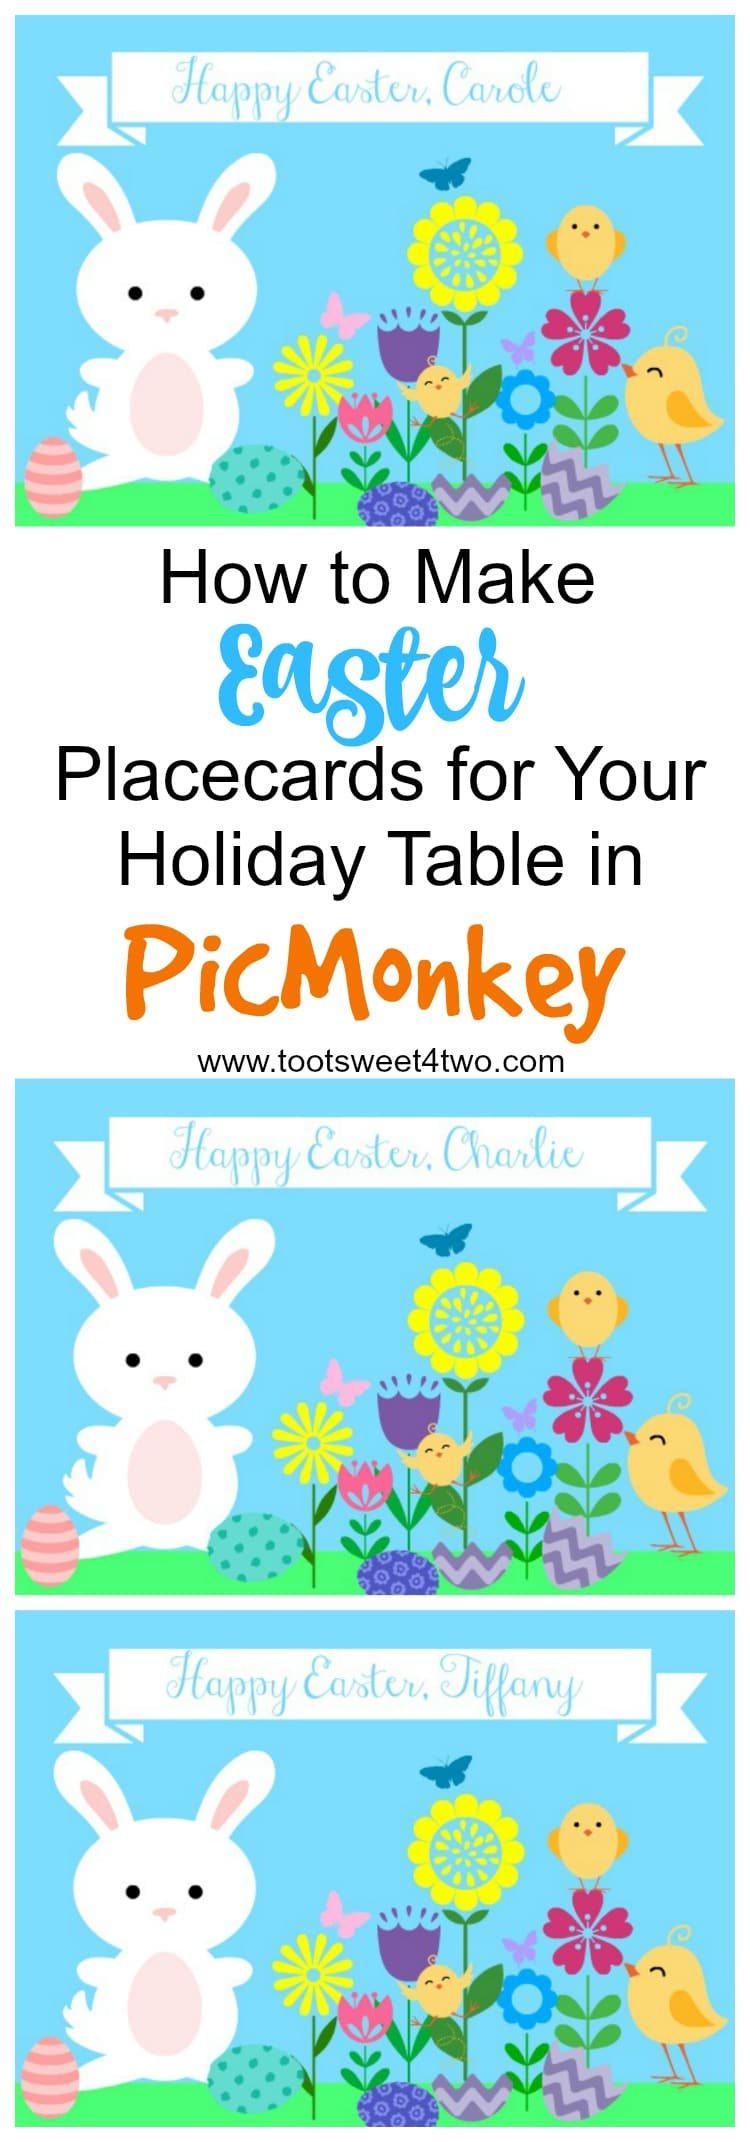 How to Make Easter Placecards in PicMonkey - Pinterest collage